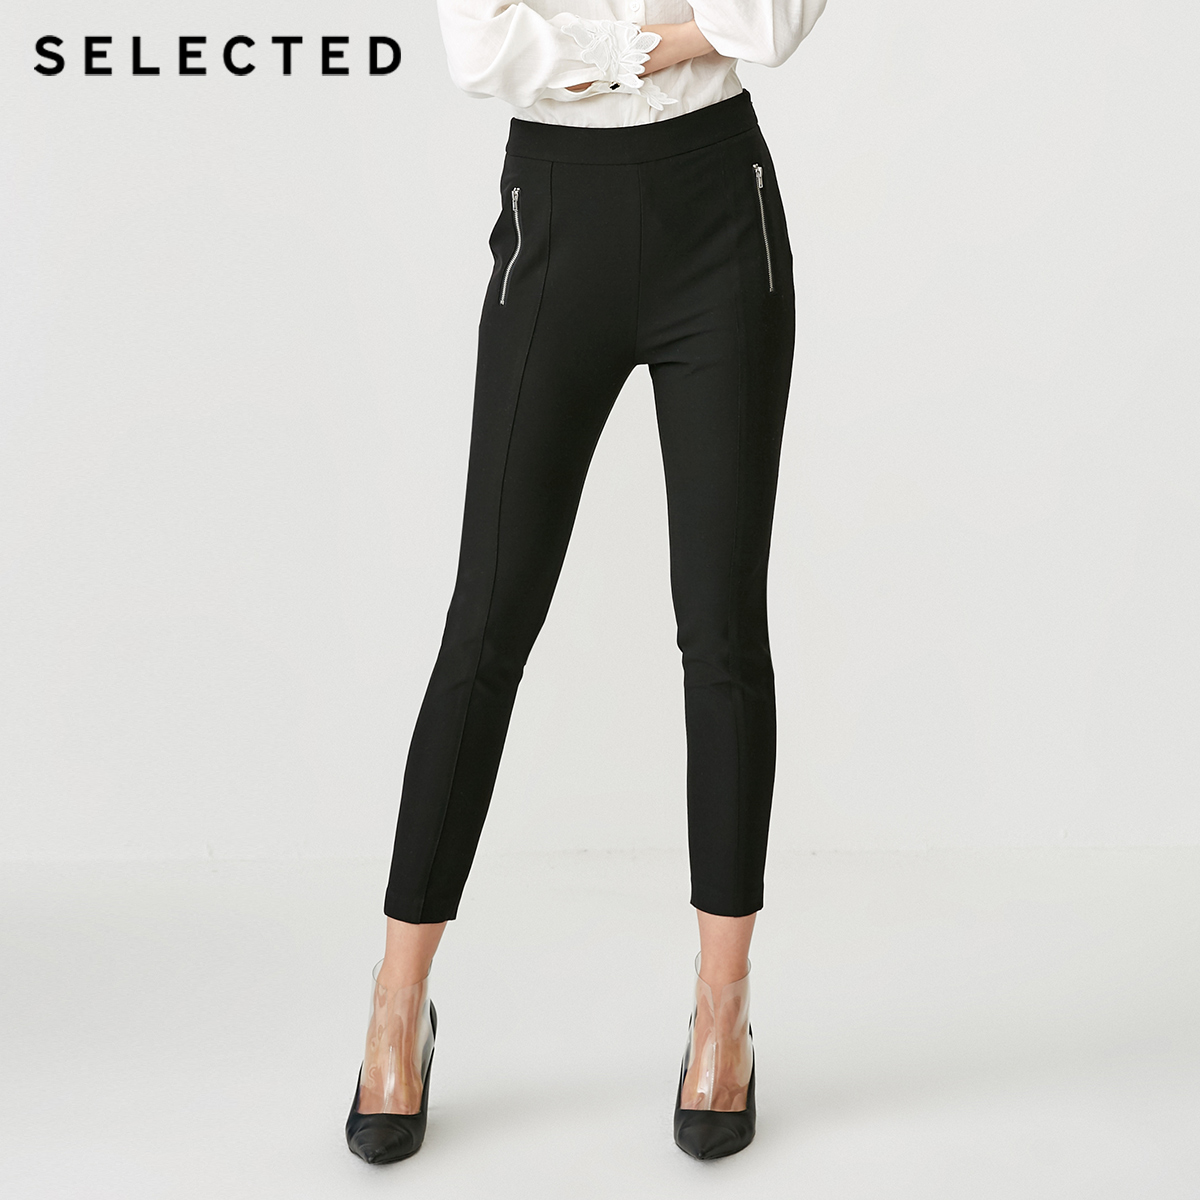 SELECTED Women's Slim Fit Black Stretch Crop Pants S|418414521